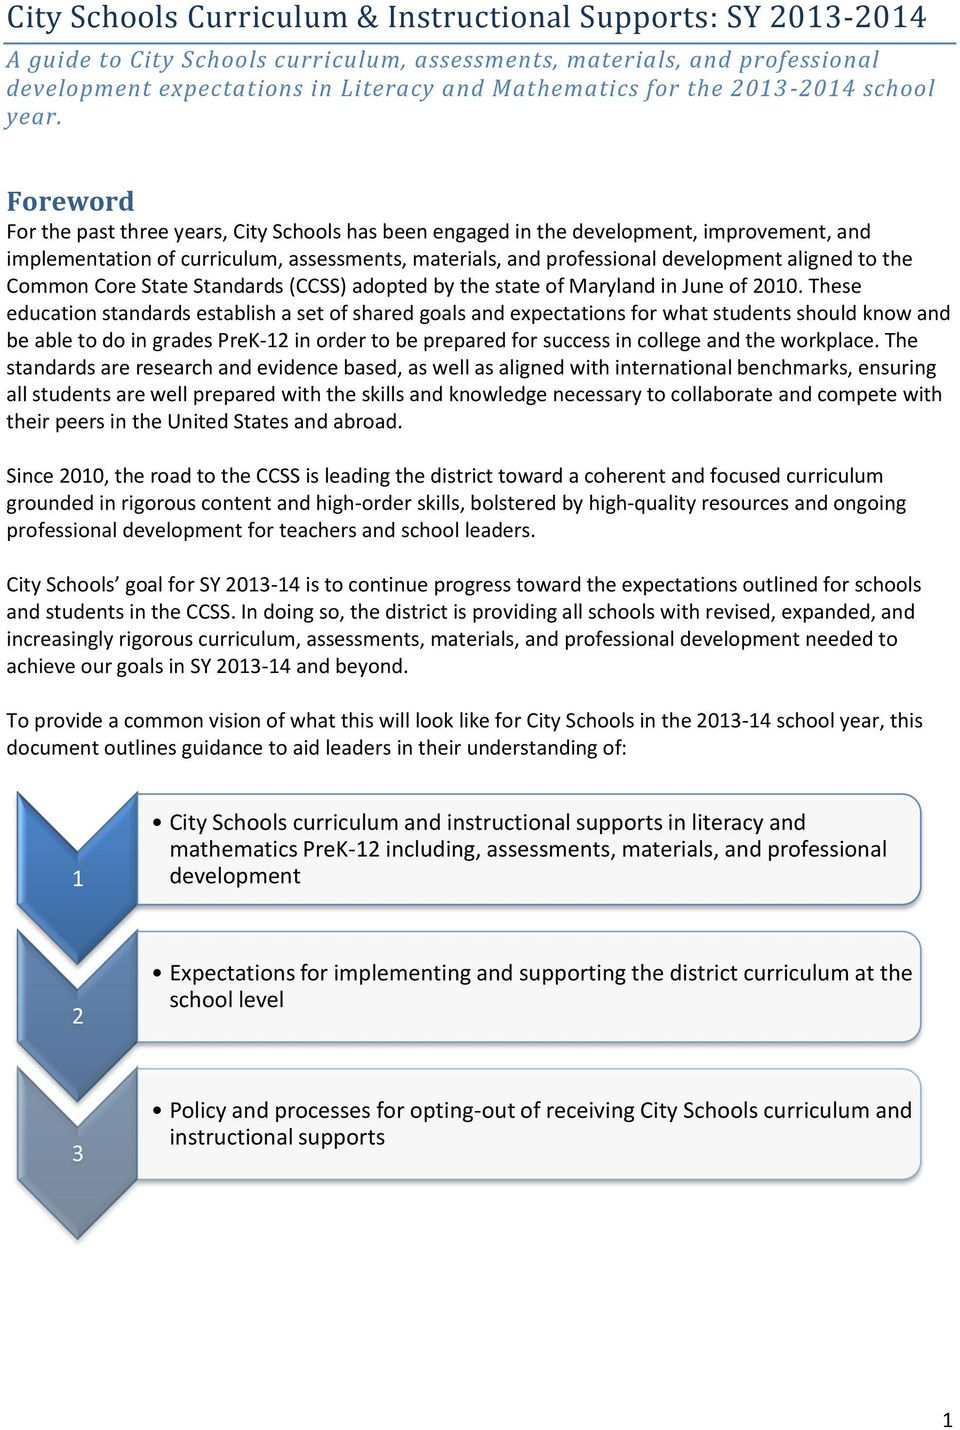 Foreword For the past three years, City Schools has been engaged in the development, improvement, and implementation of curriculum, assessments, materials, and professional development aligned to the